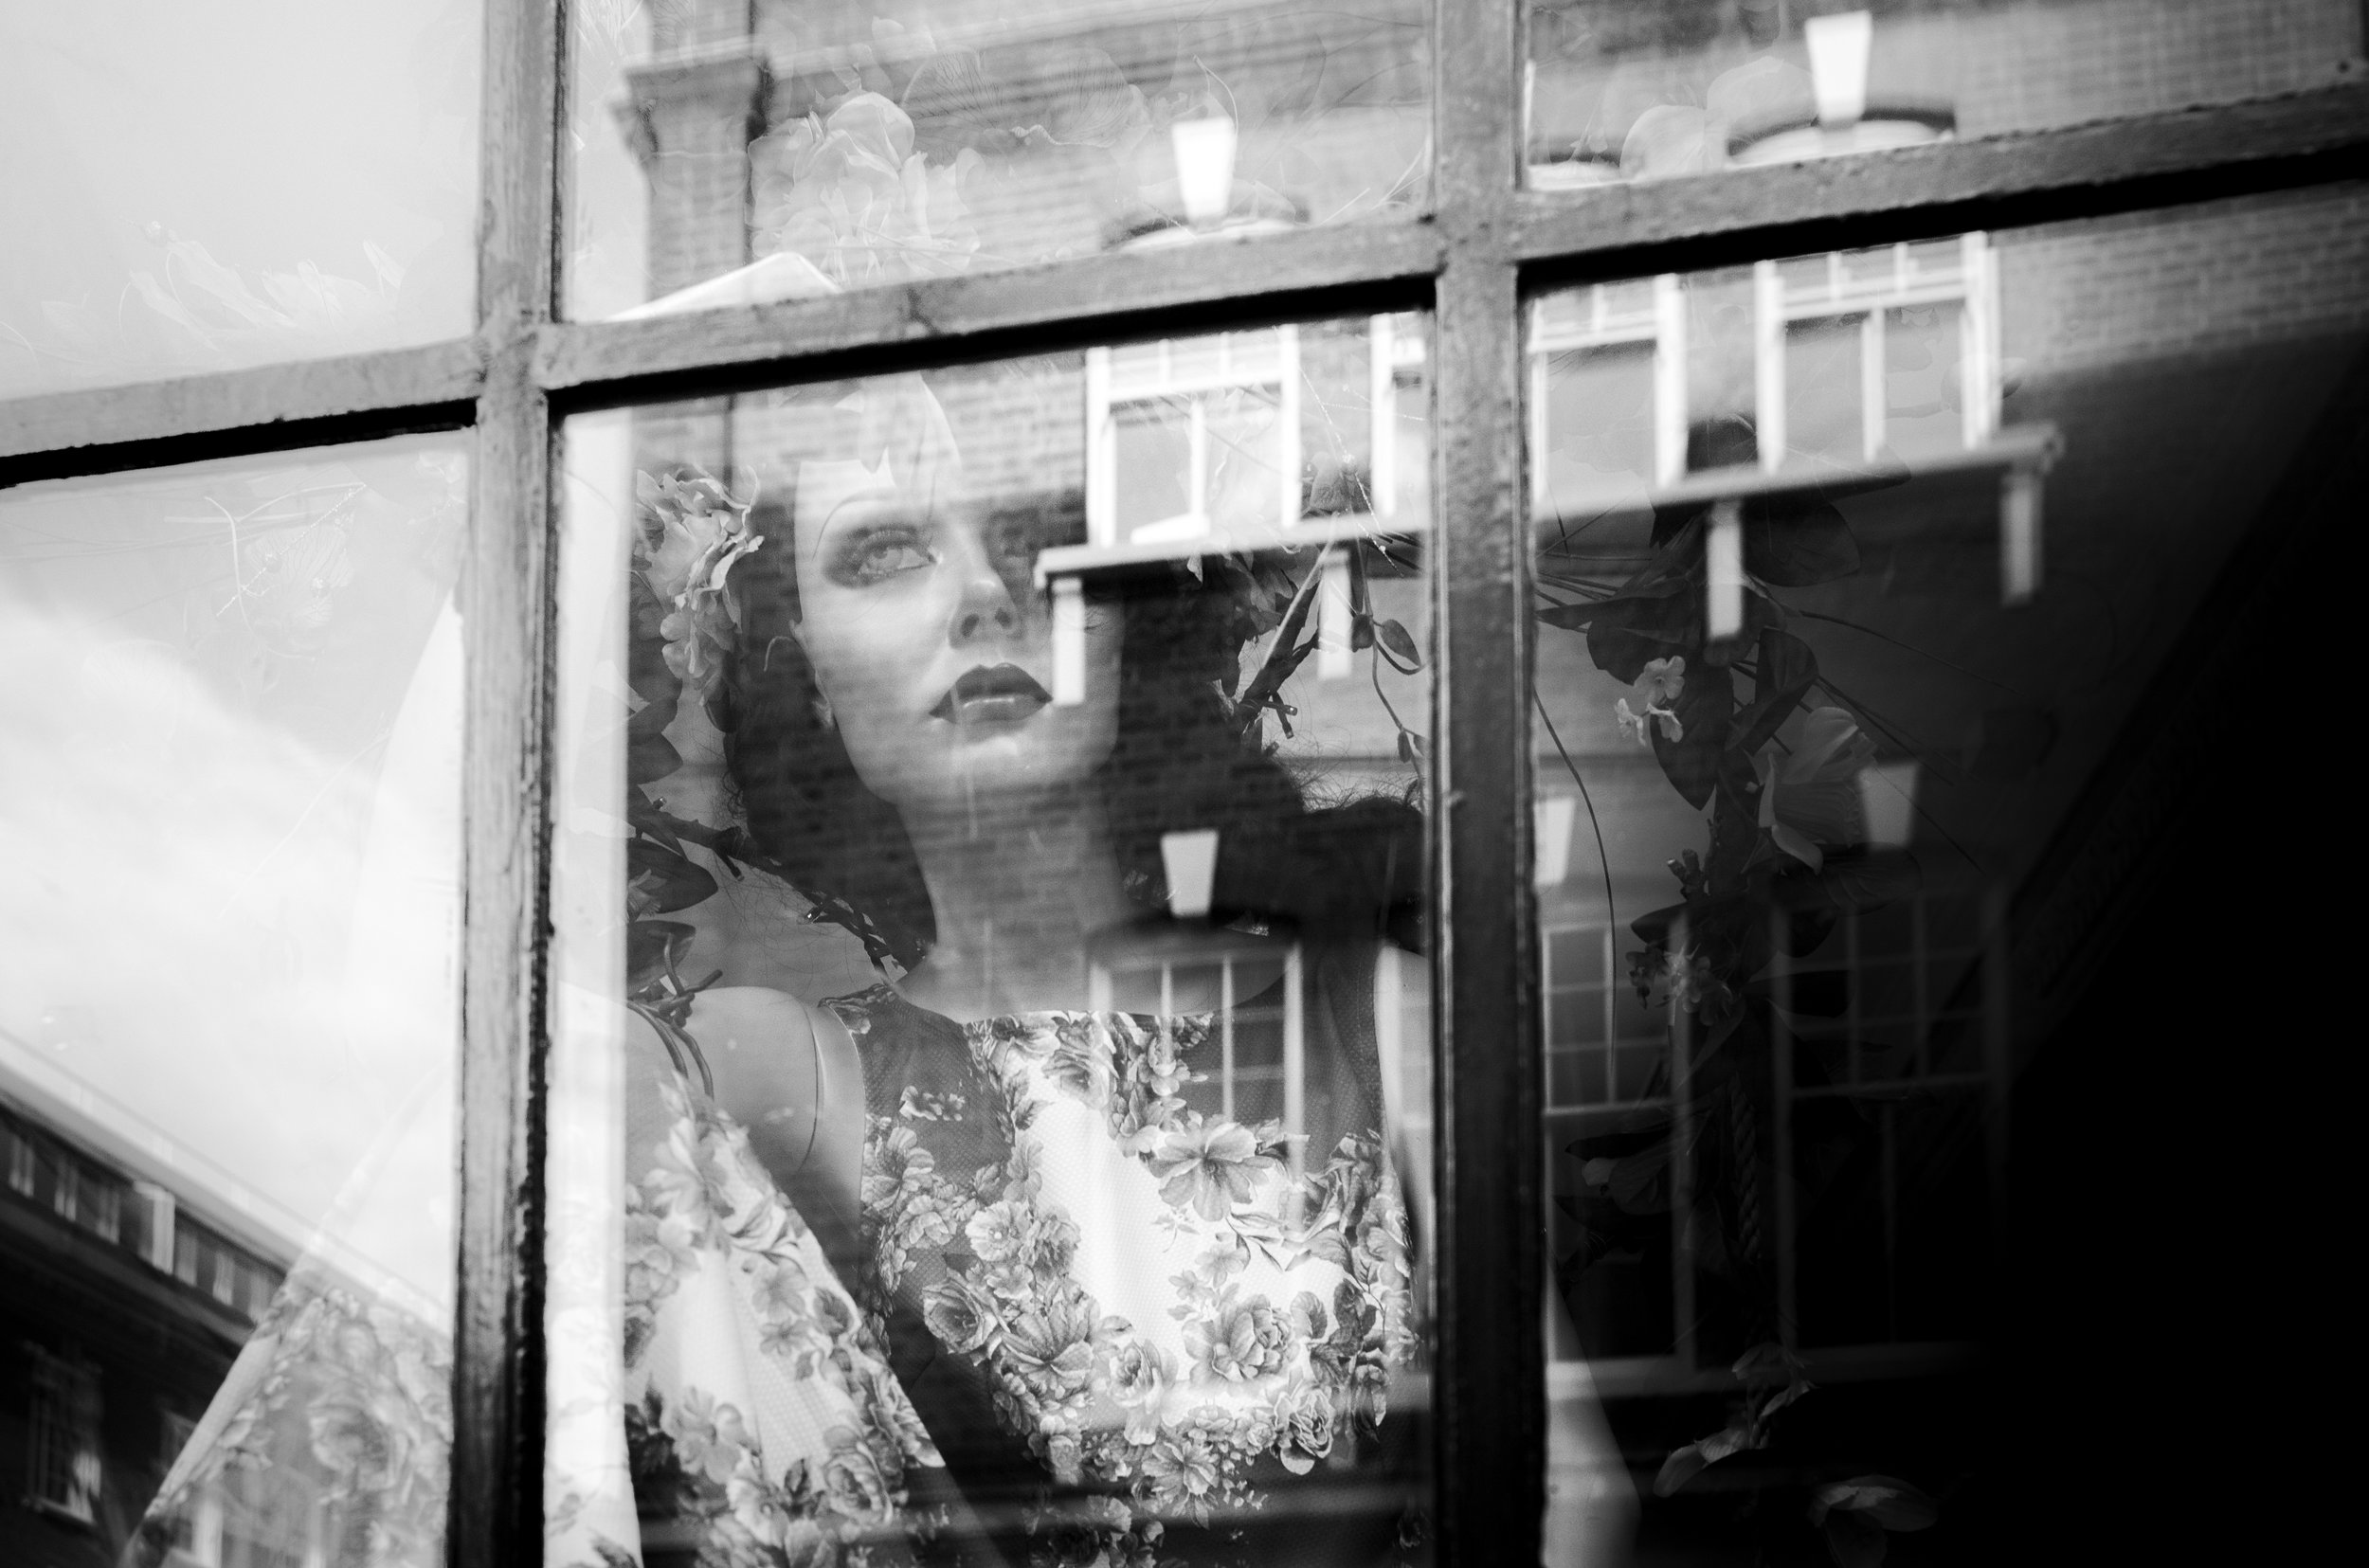 Marie Laigneau - London-based street photographer